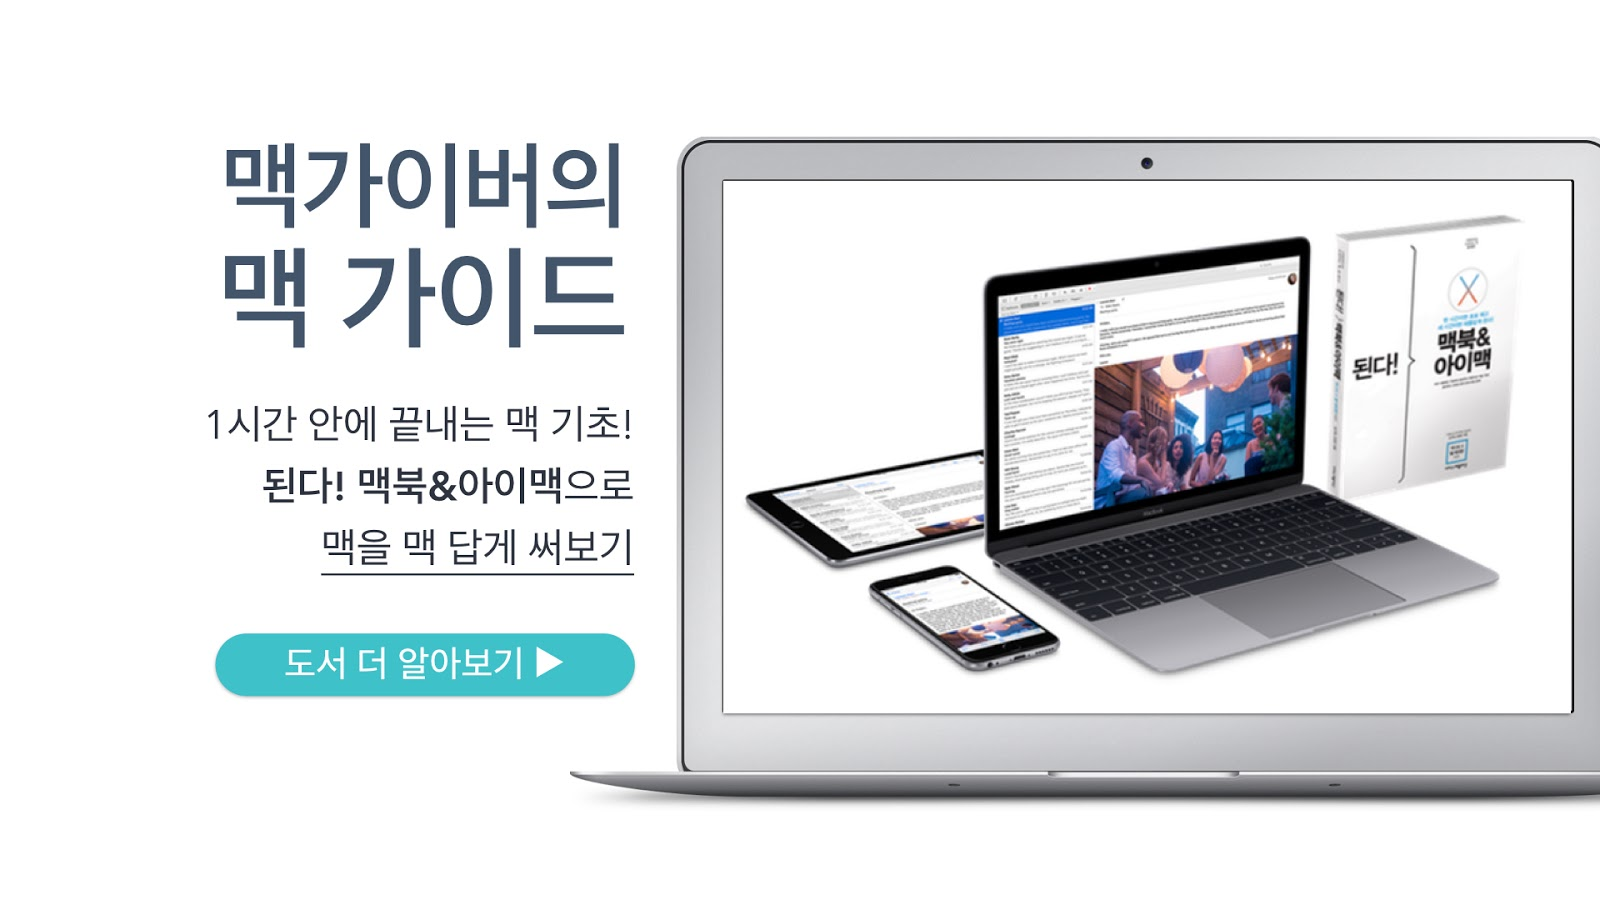 http://www.yes24.com/24/goods/22951710?scode=032&OzSrank=2